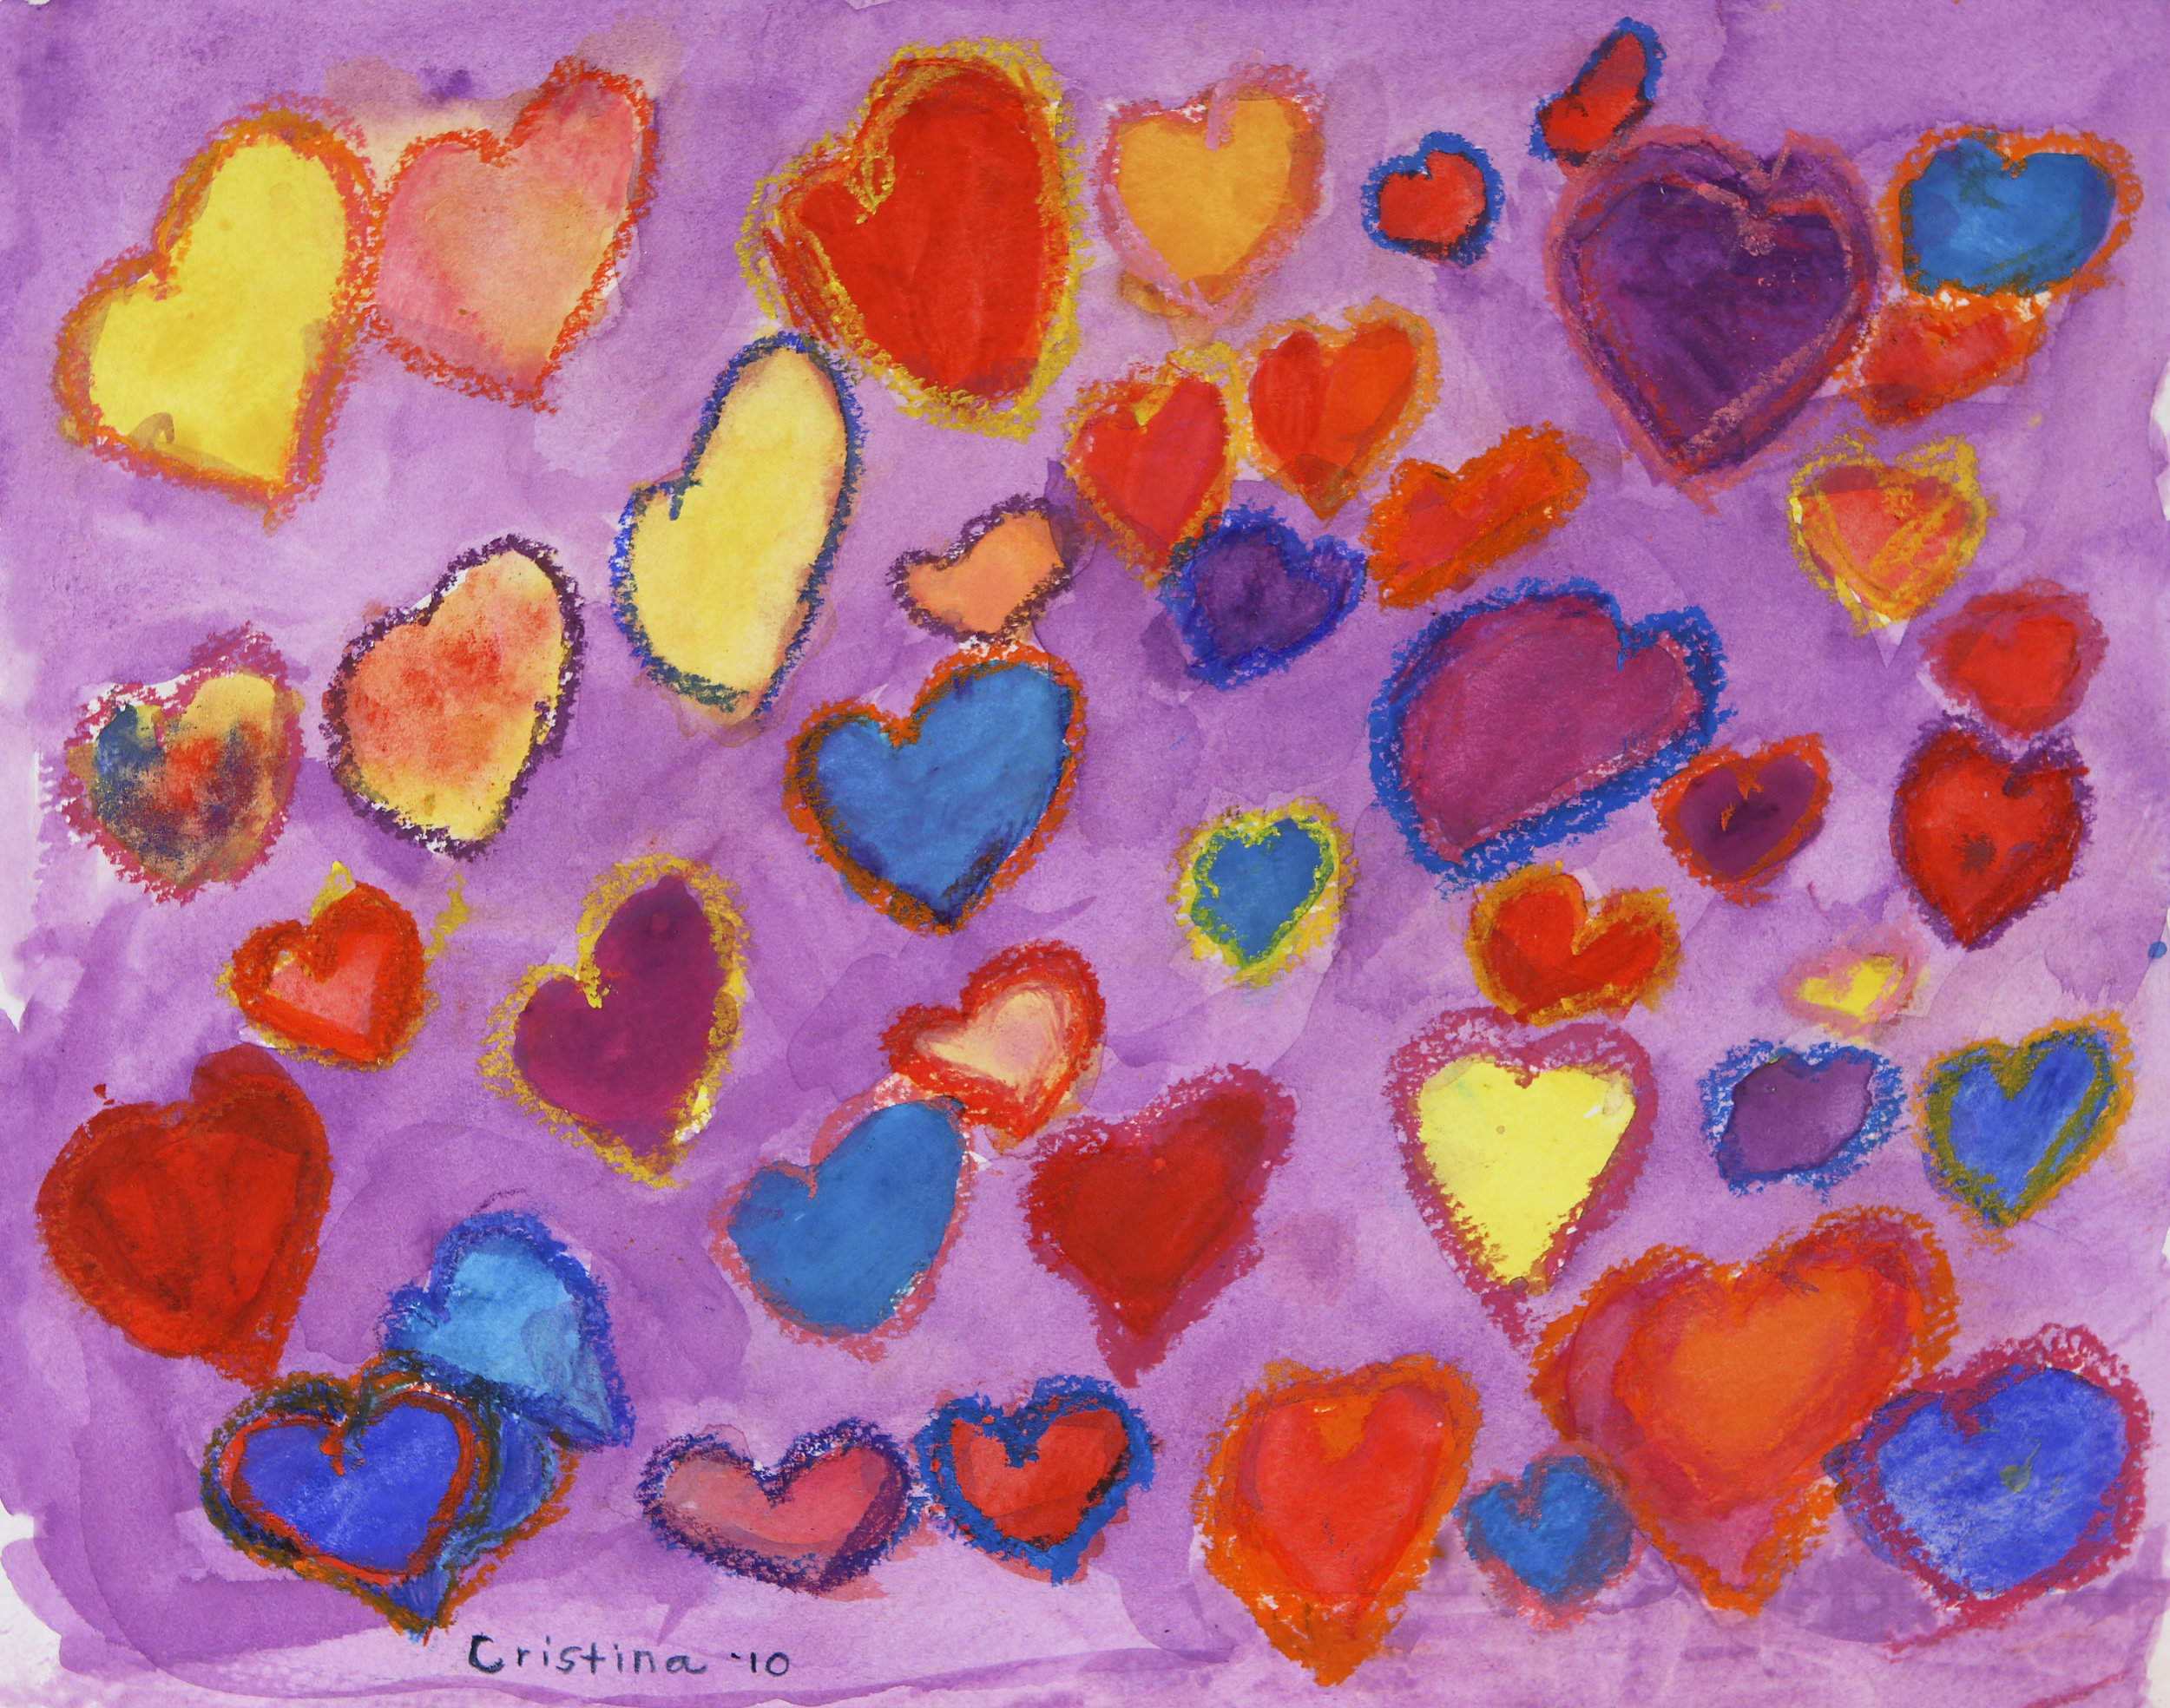 The 'Sweet' Hearts (purple)